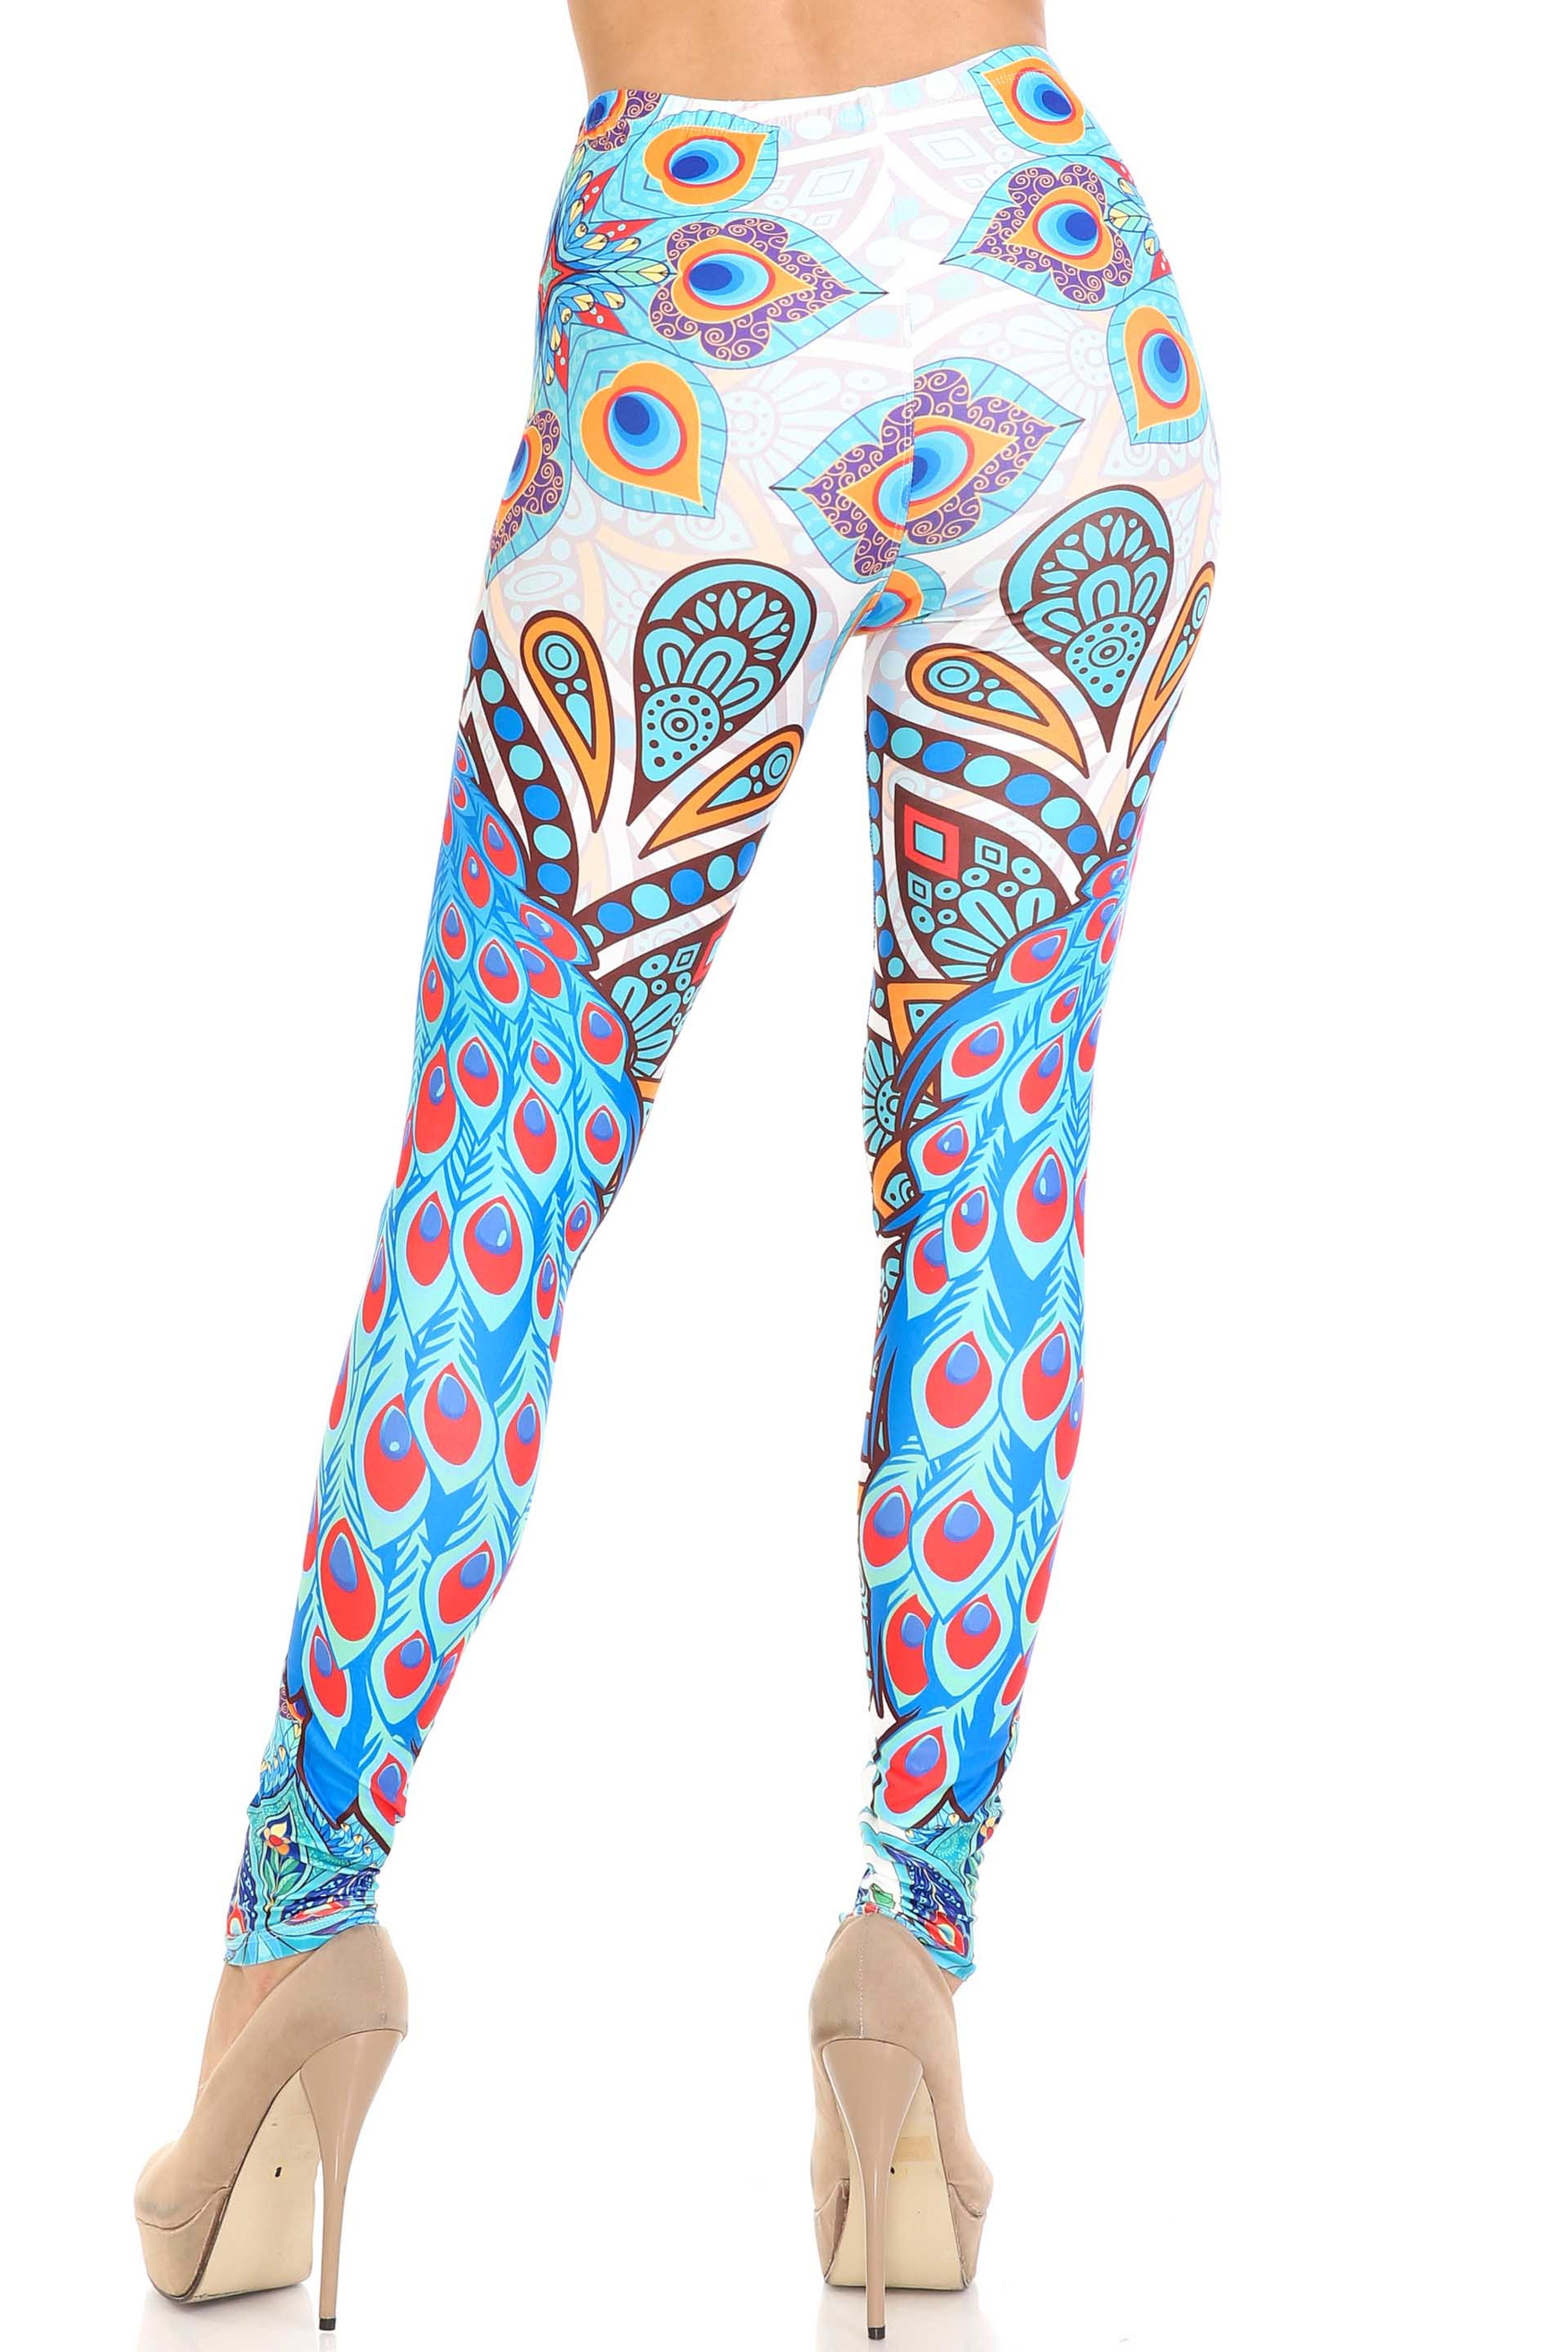 Creamy Soft Pristine Peacock Leggings - By USA Fashion™